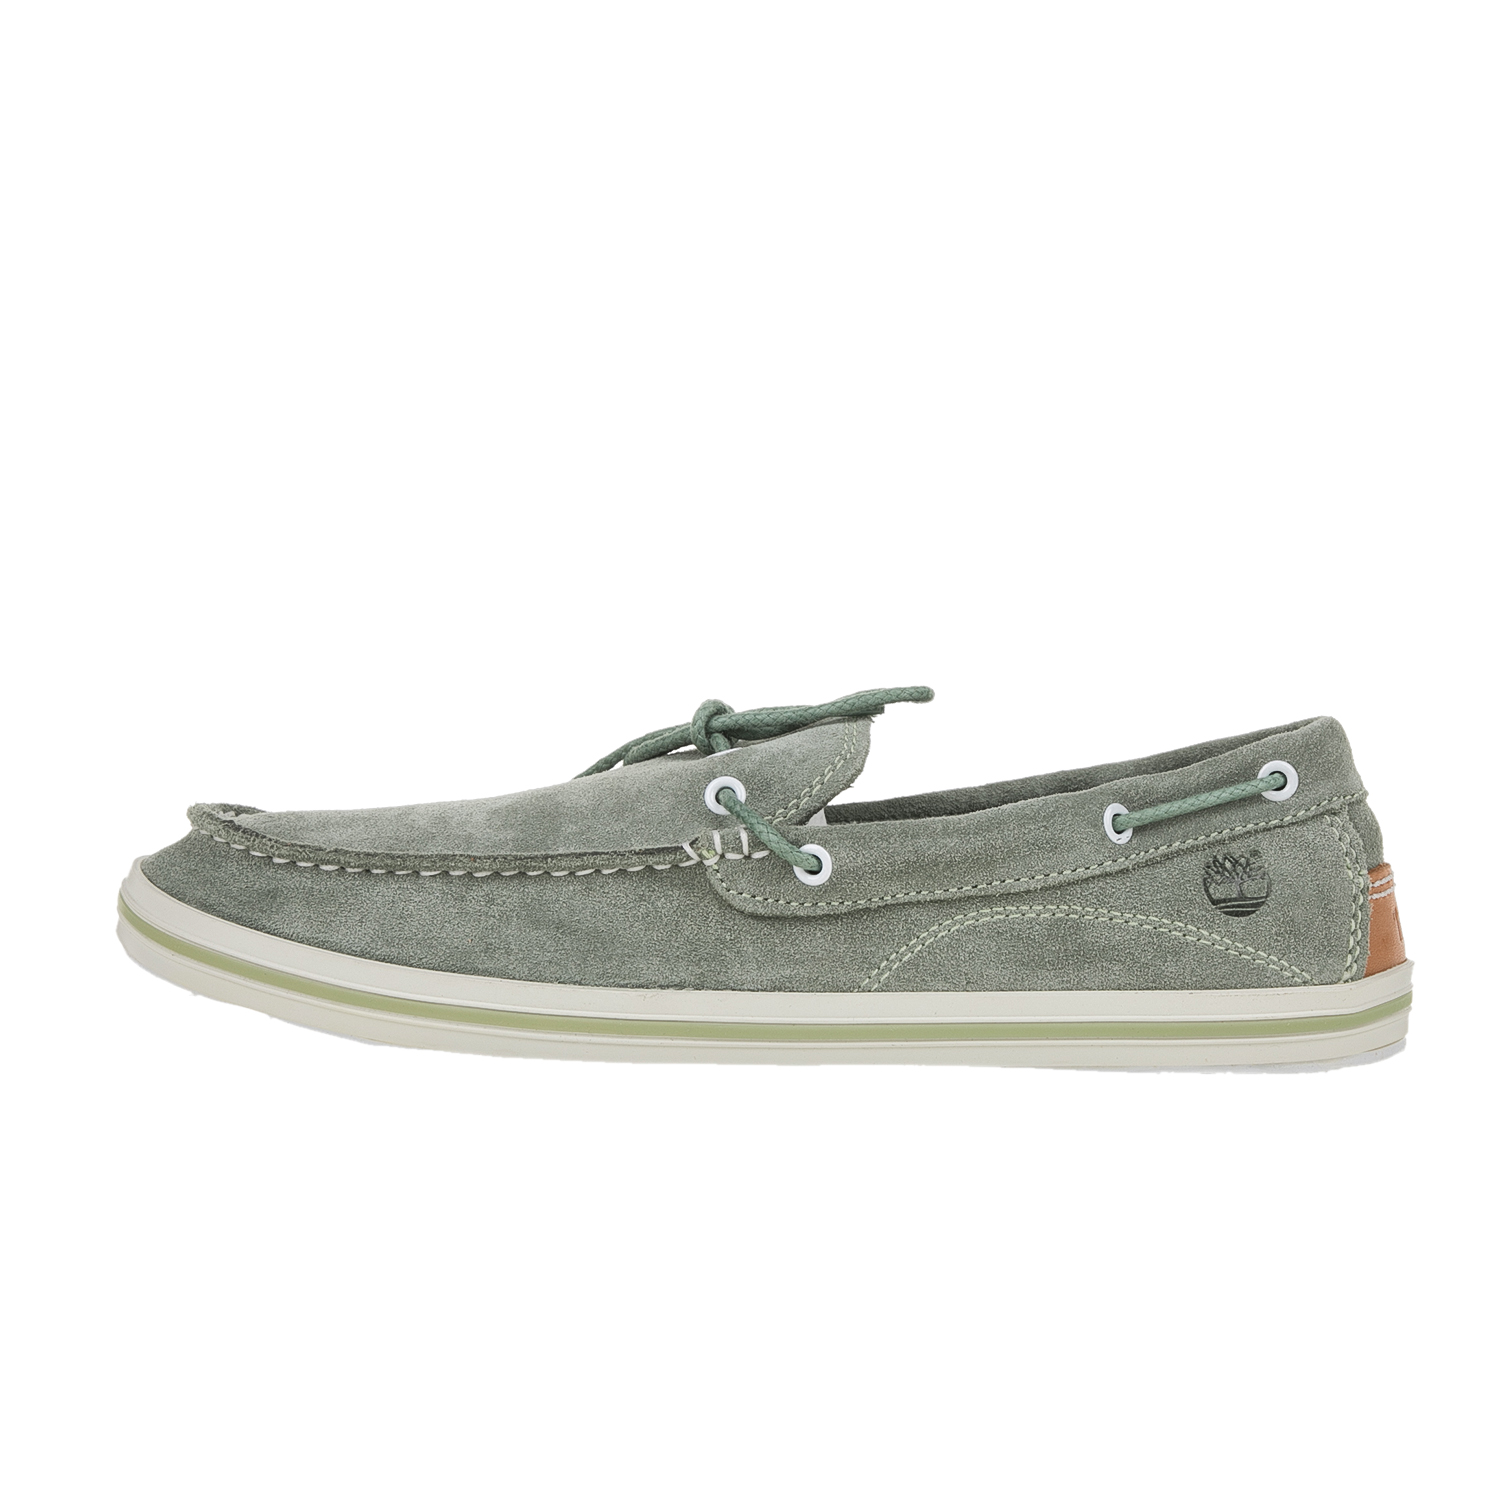 26be2eef130 TIMBERLAND – Ανδρικά δερμάτινα boat shoes TIMBERLAND γκρι-πράσινα